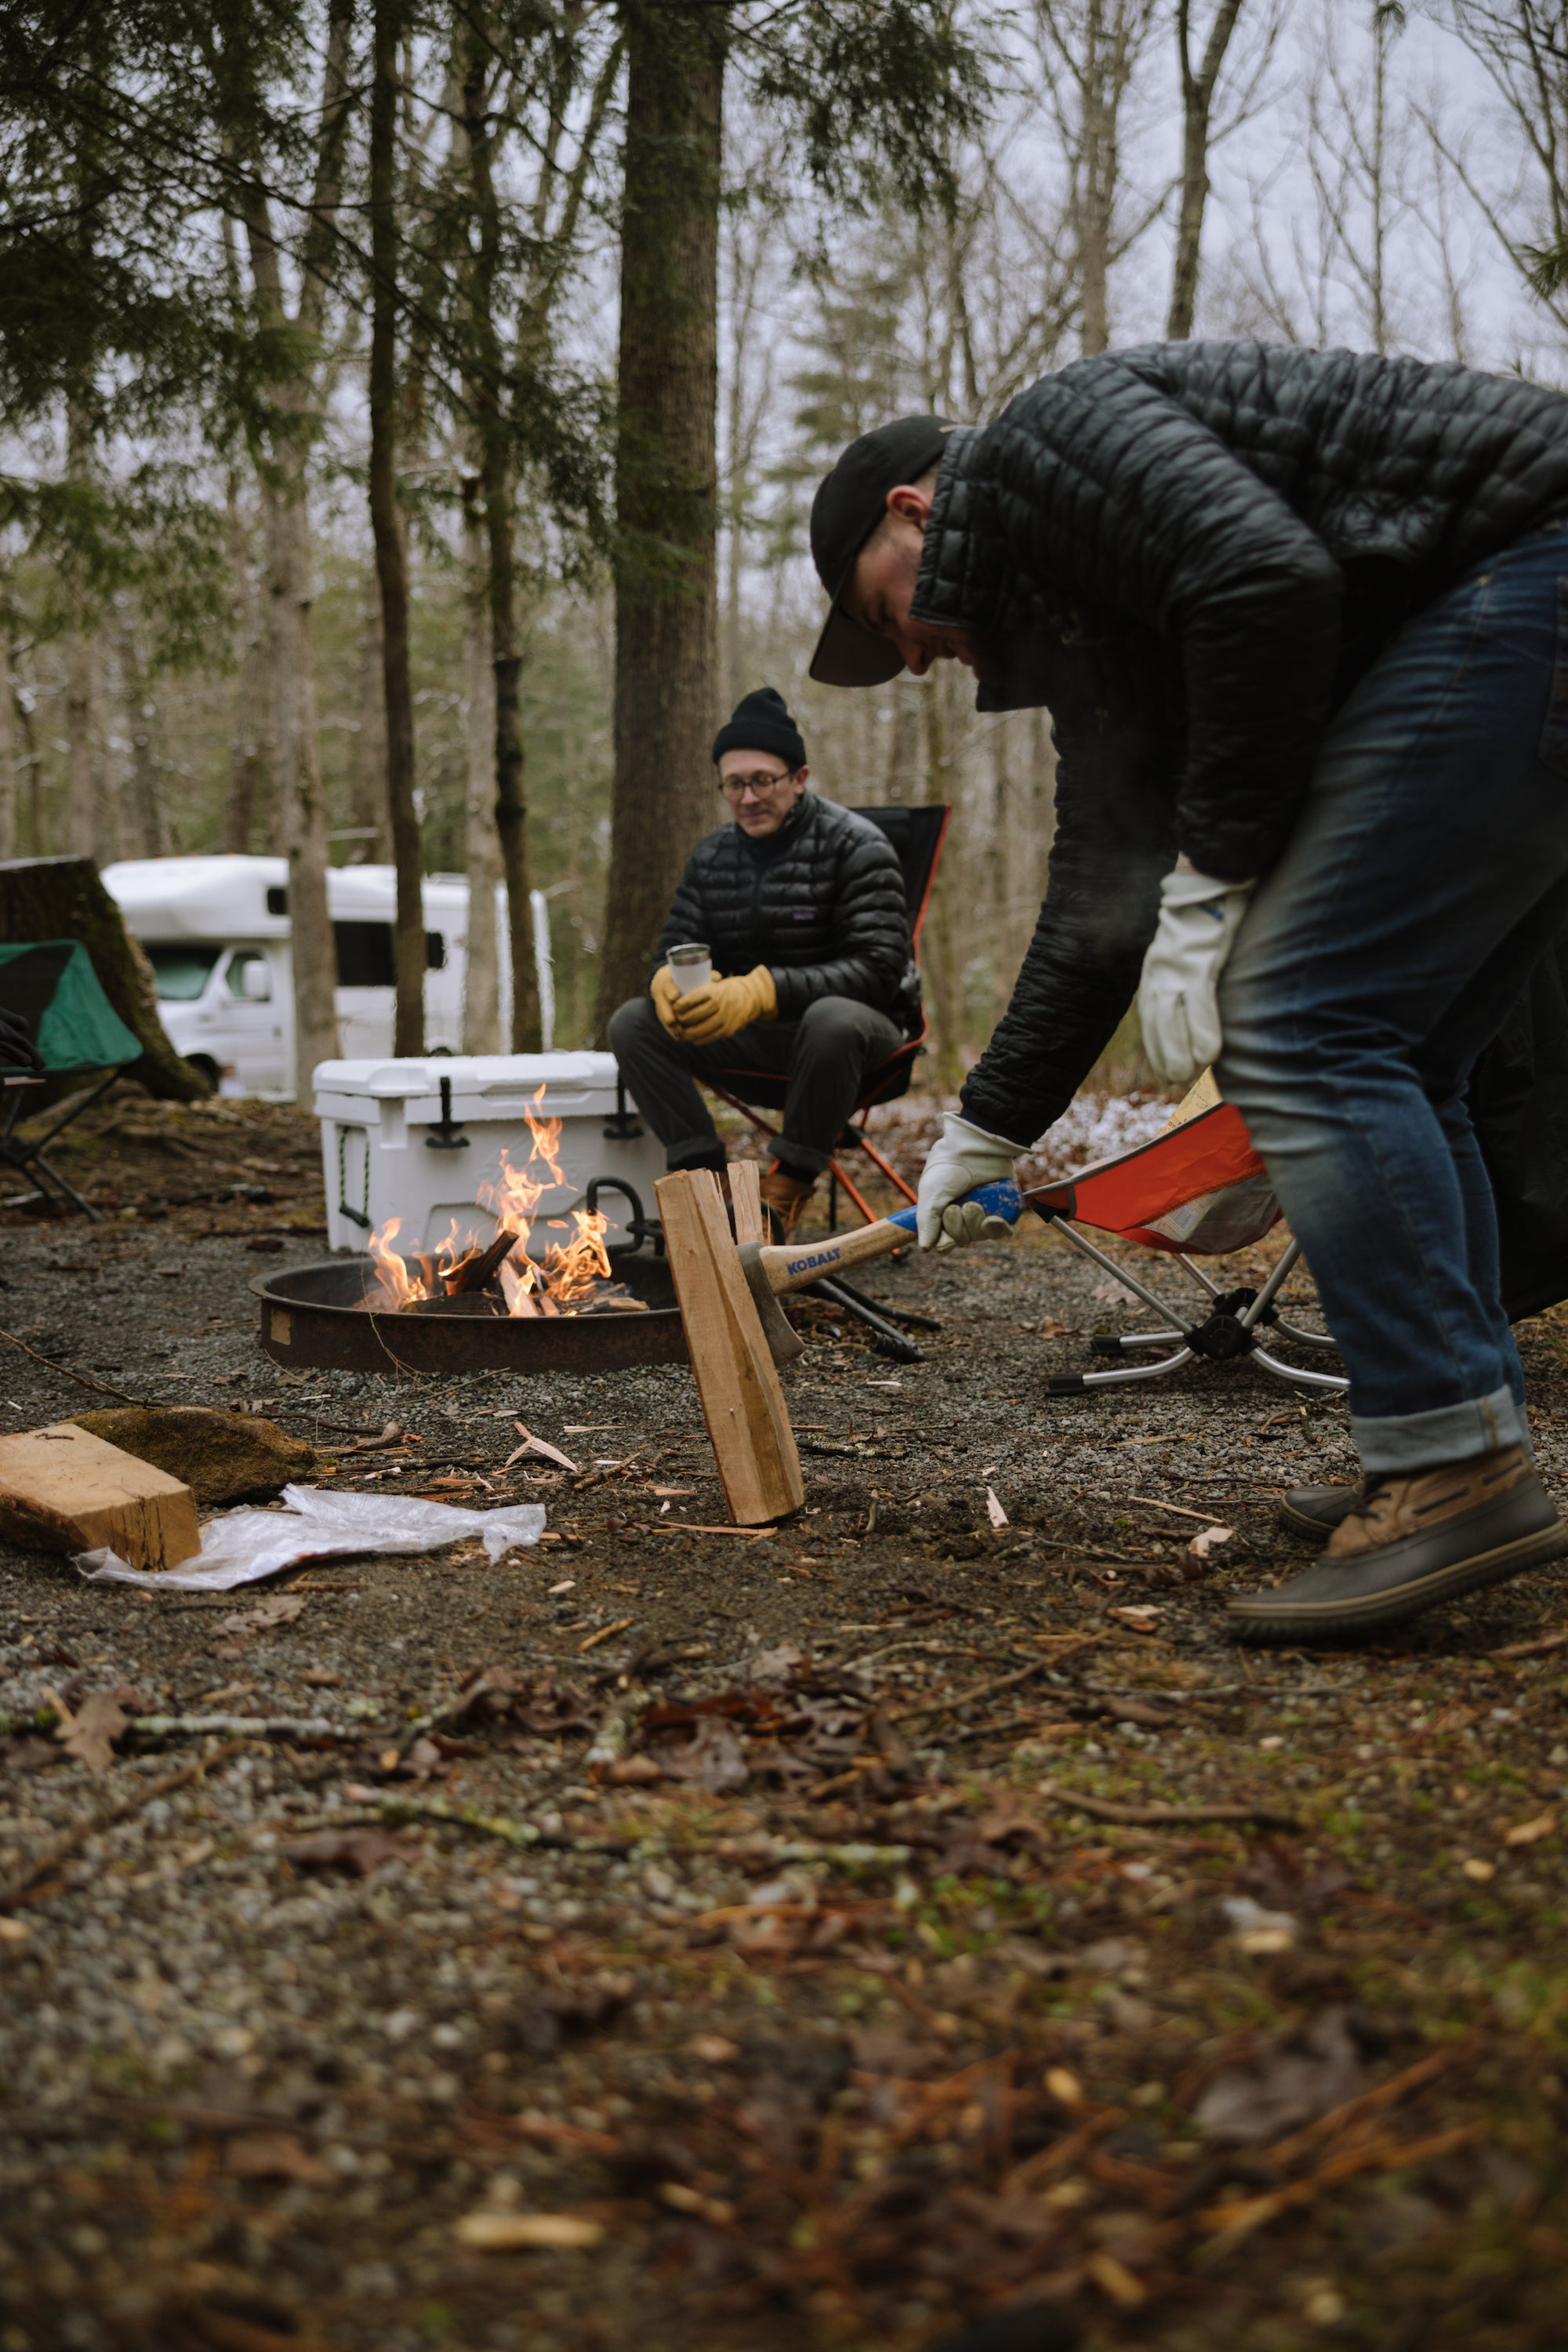 Winter Adventures: Tips for Adventuring In Cold Weather from the CMT Outbounders - Winter Campfire